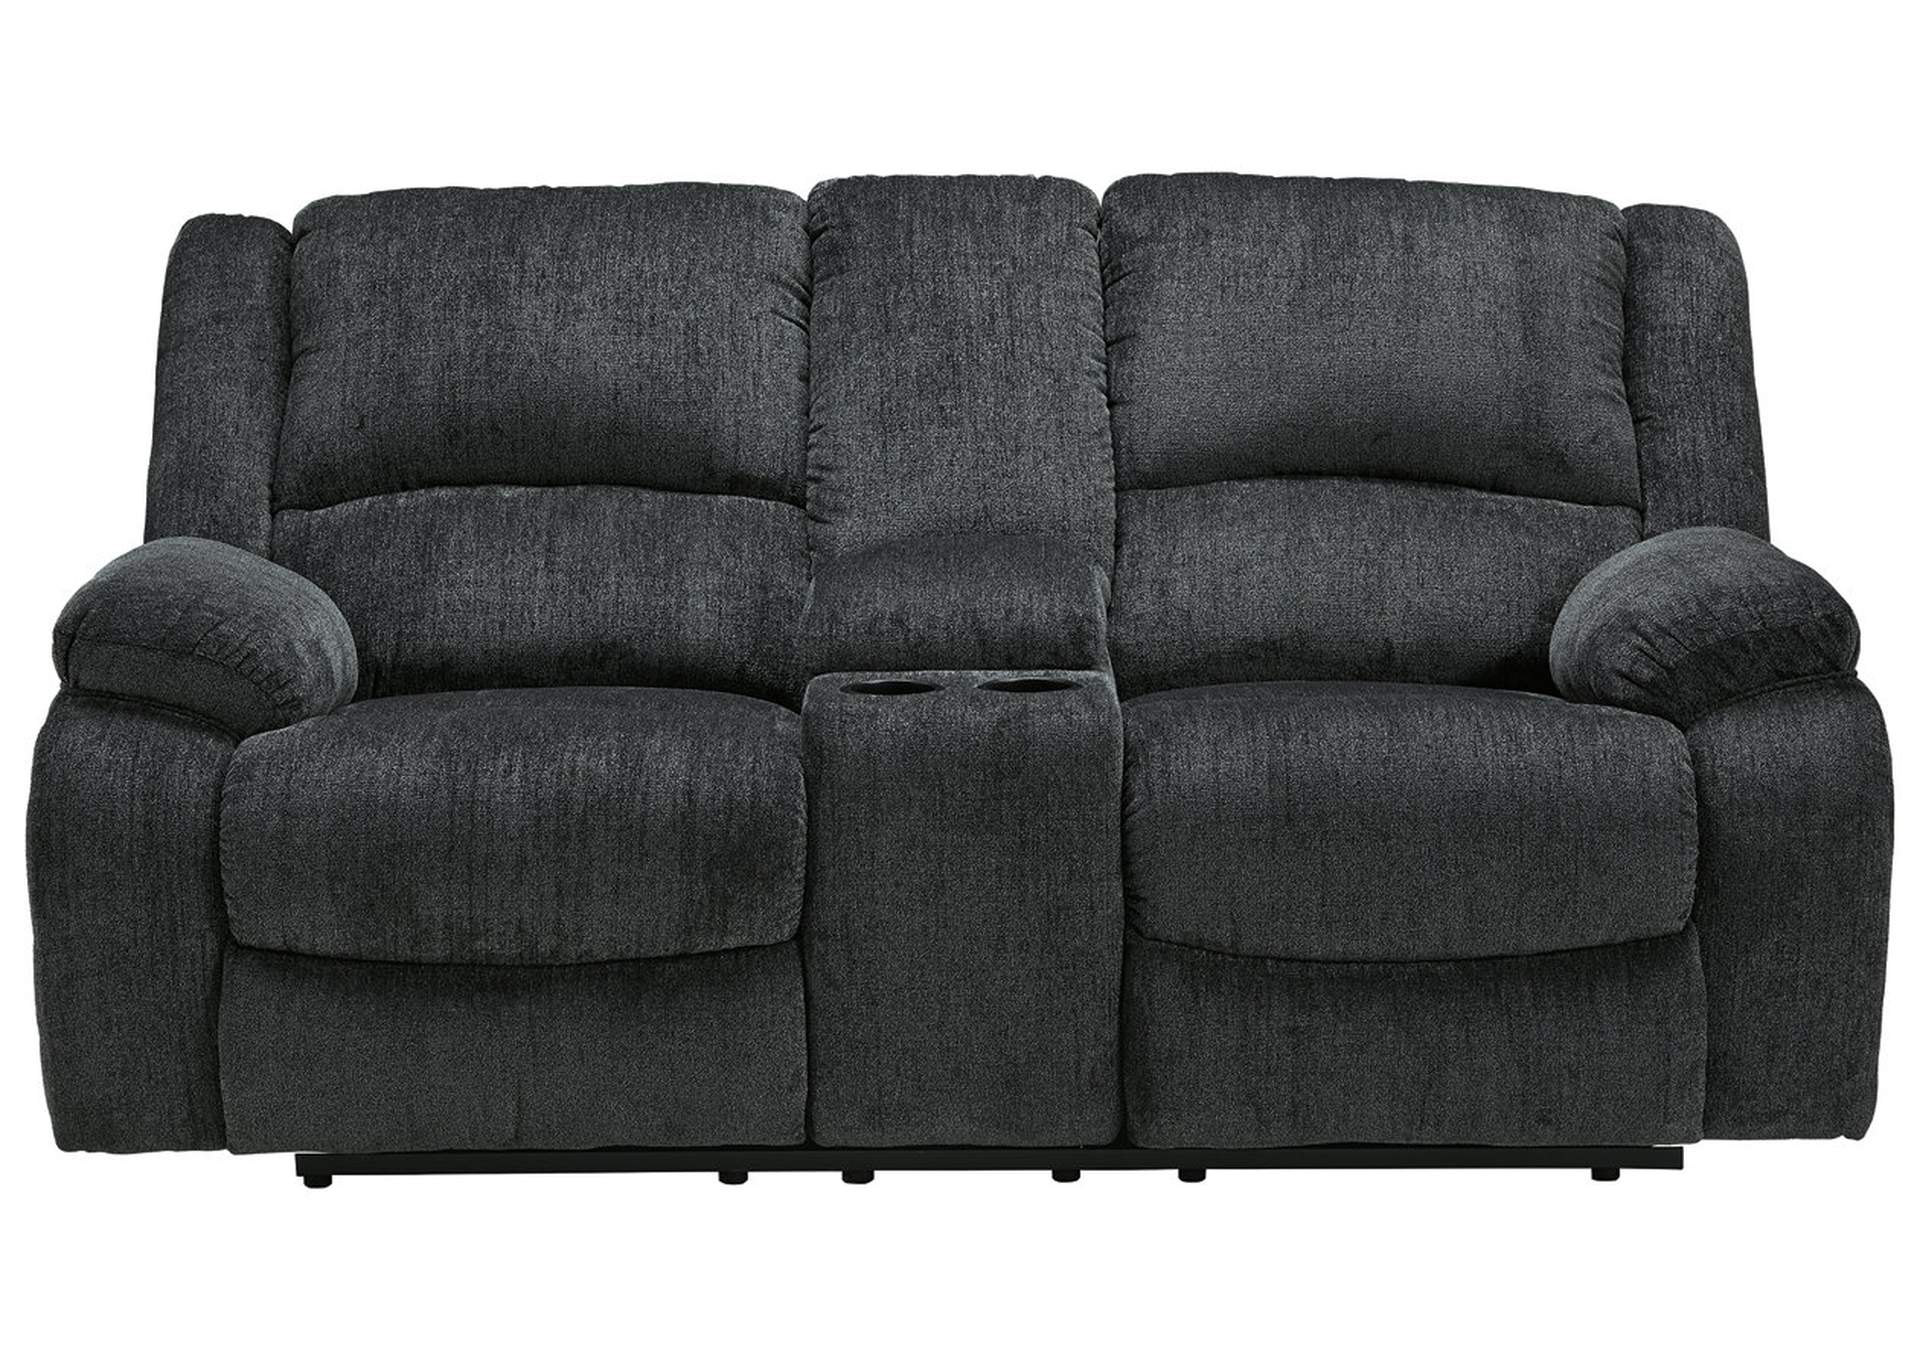 Draycoll Reclining Loveseat with Console,Signature Design By Ashley